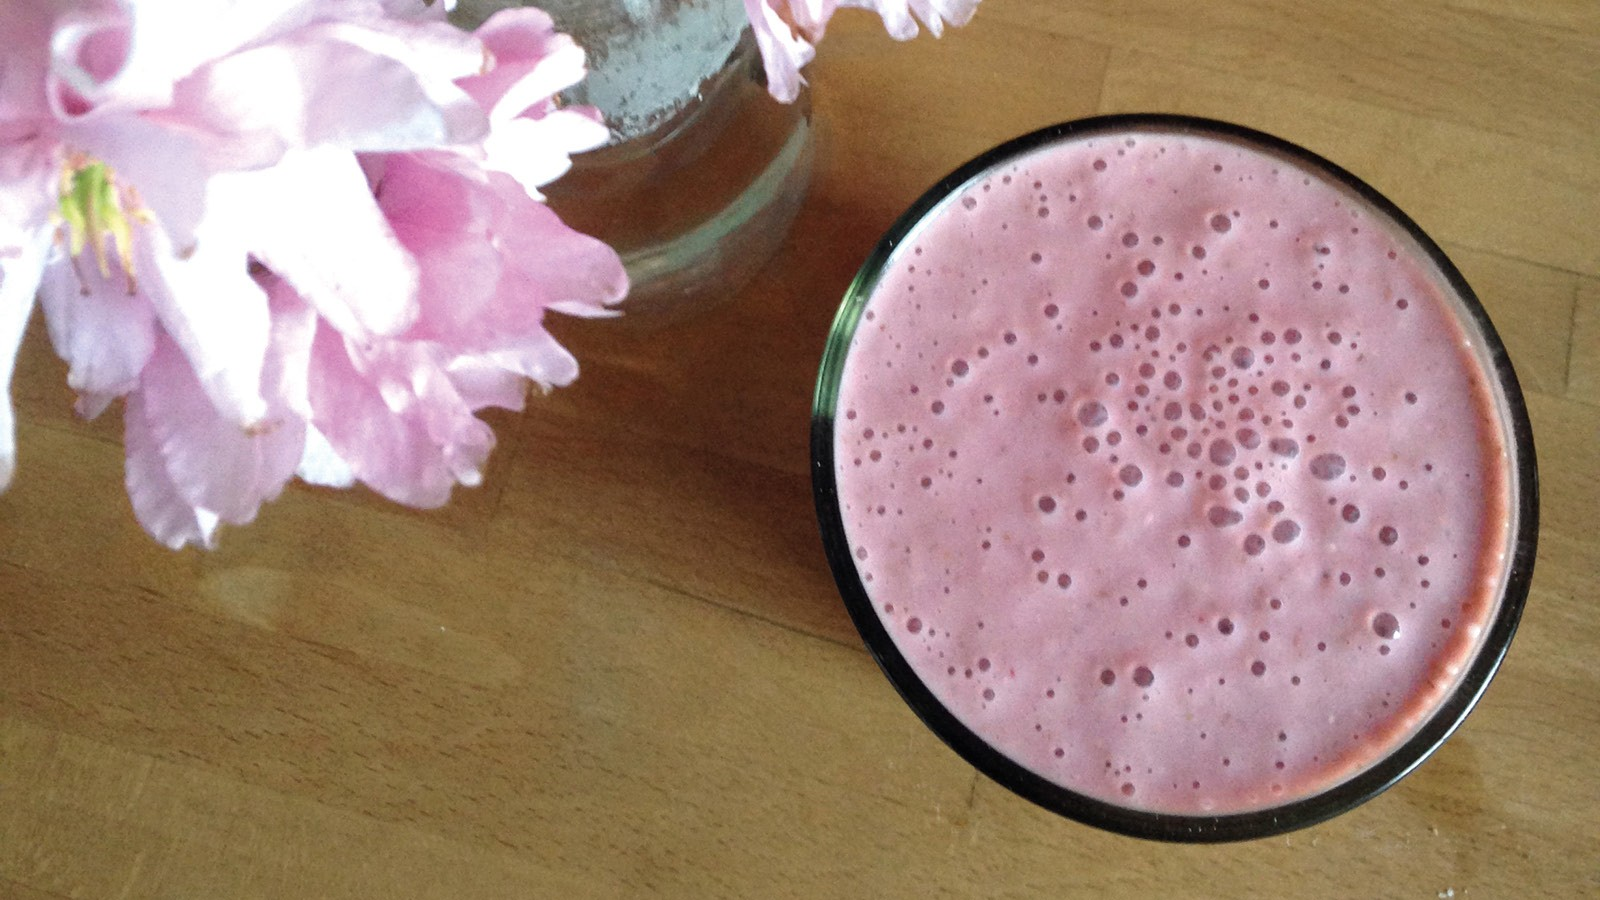 Recover and refresh with a tasty smoothie